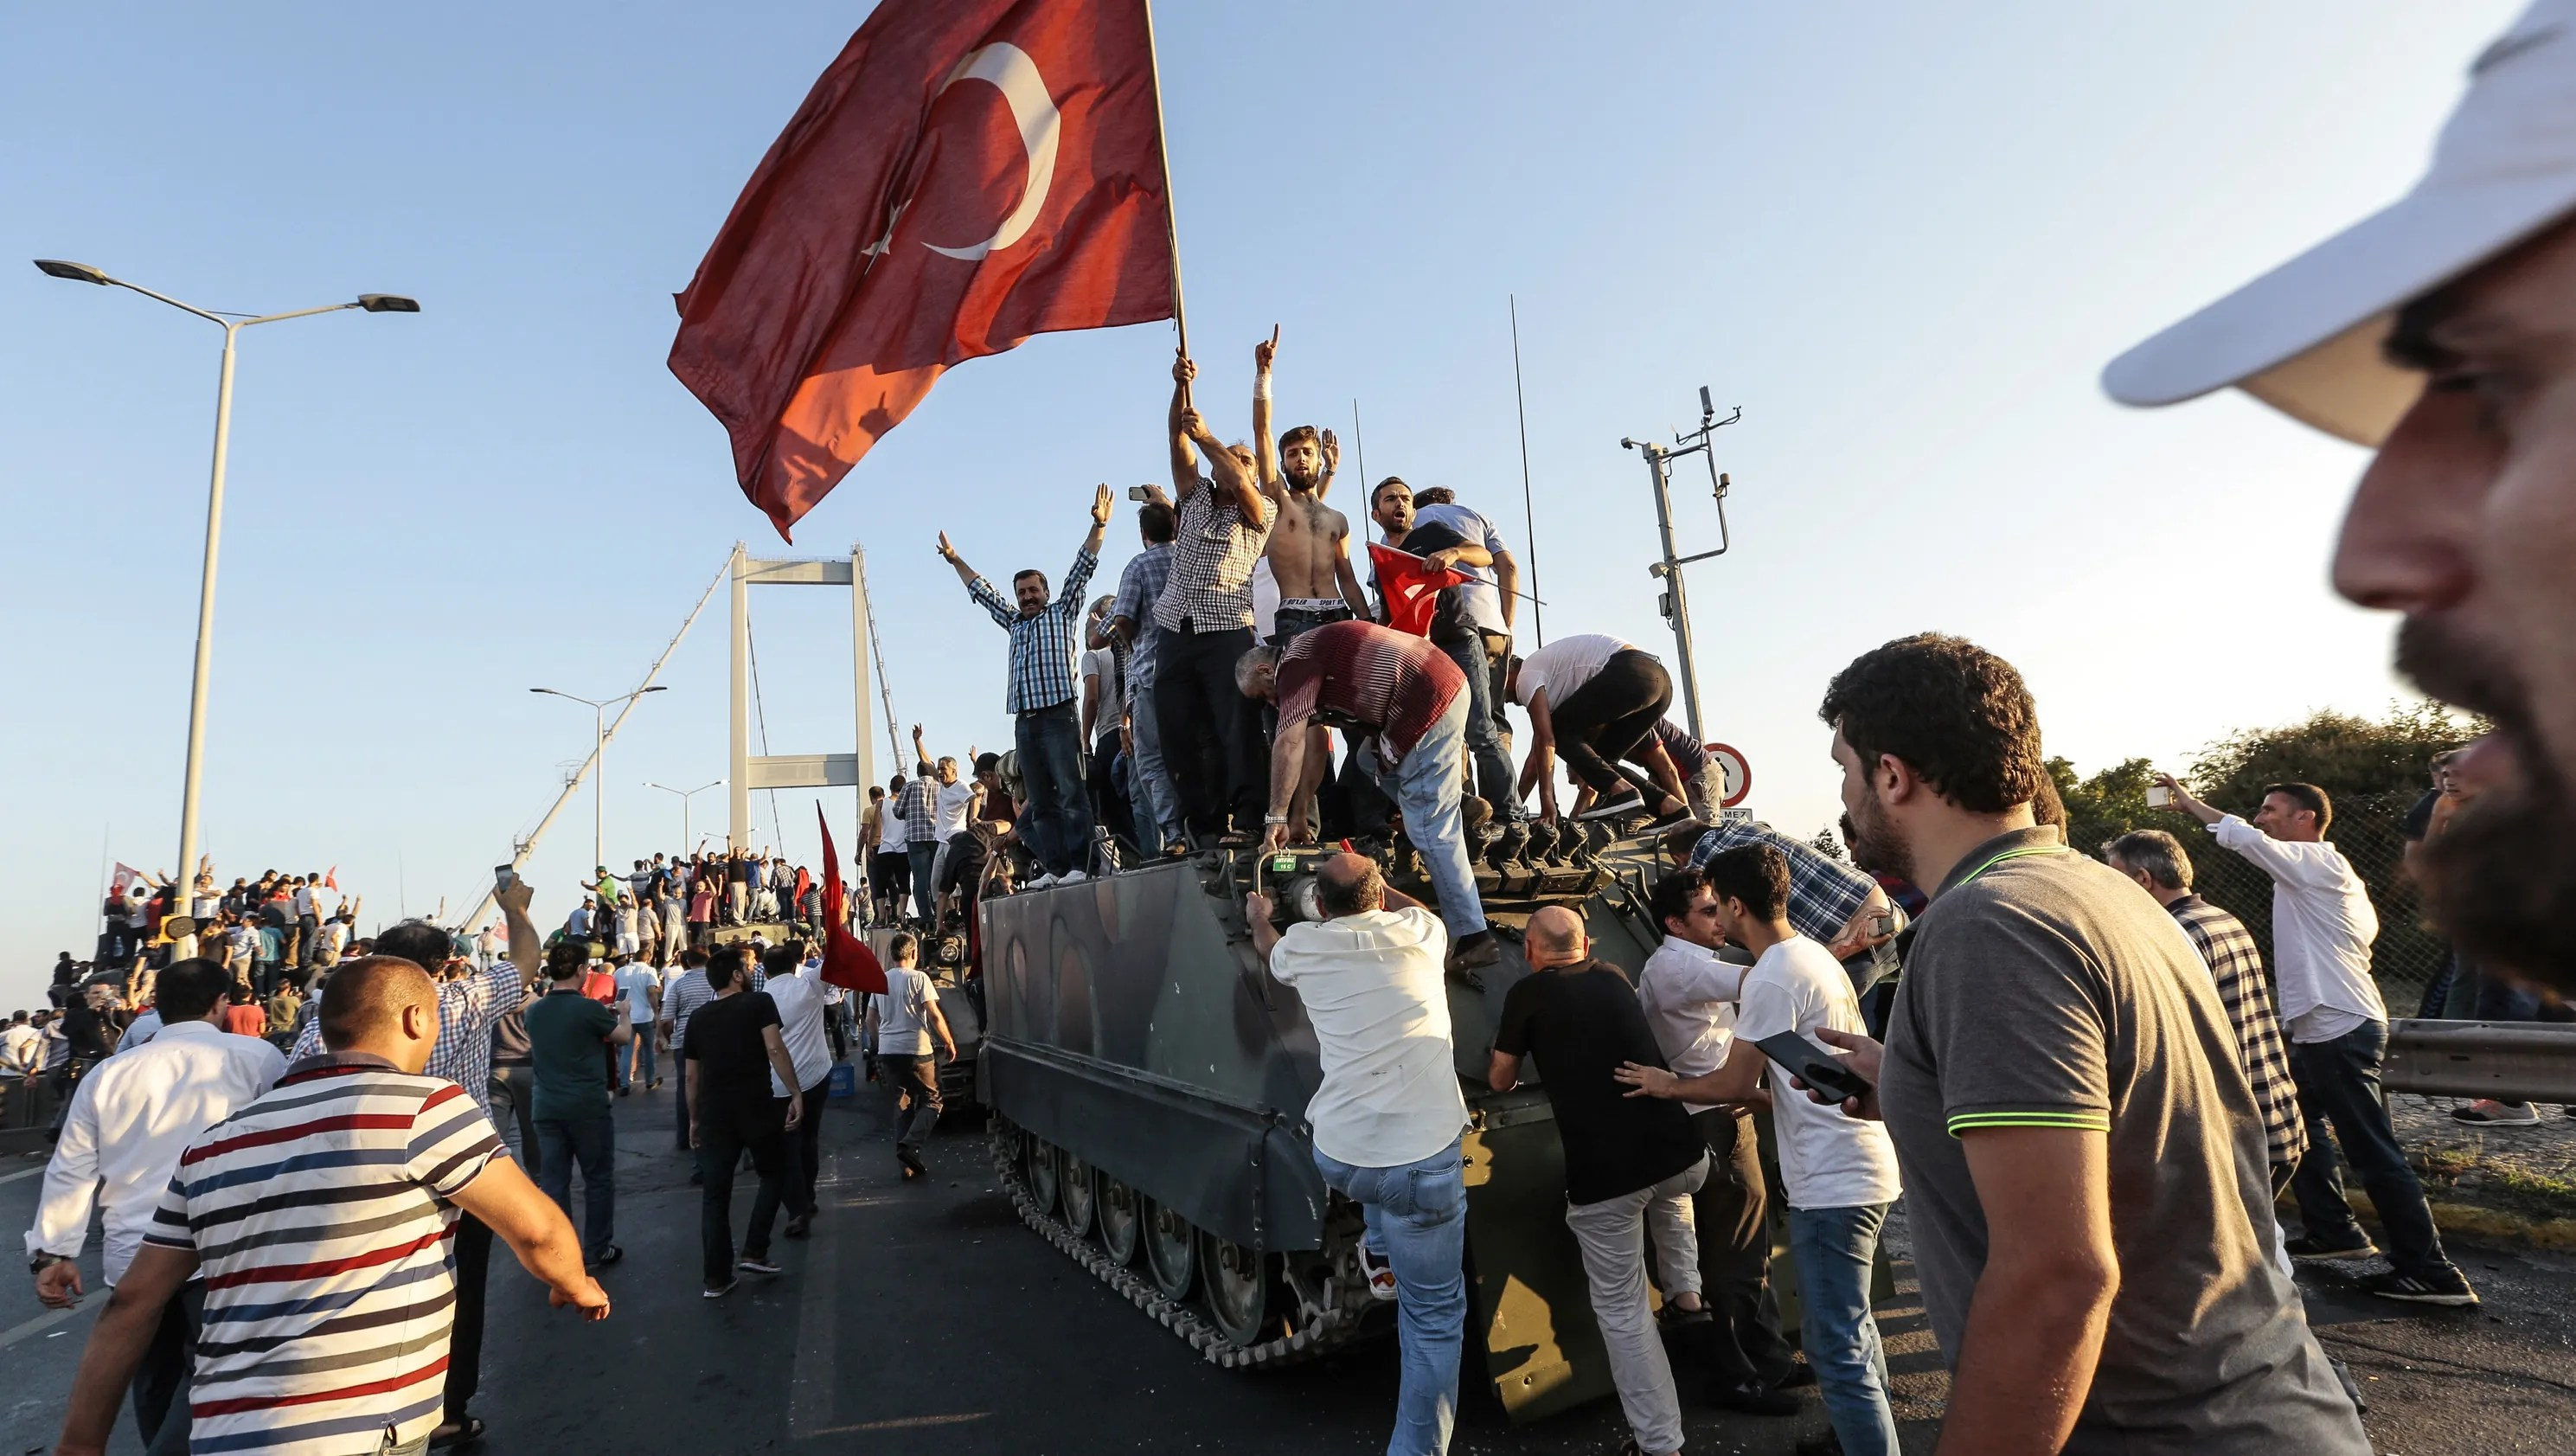 Reports At least 90 dead in attempted Turkish coup